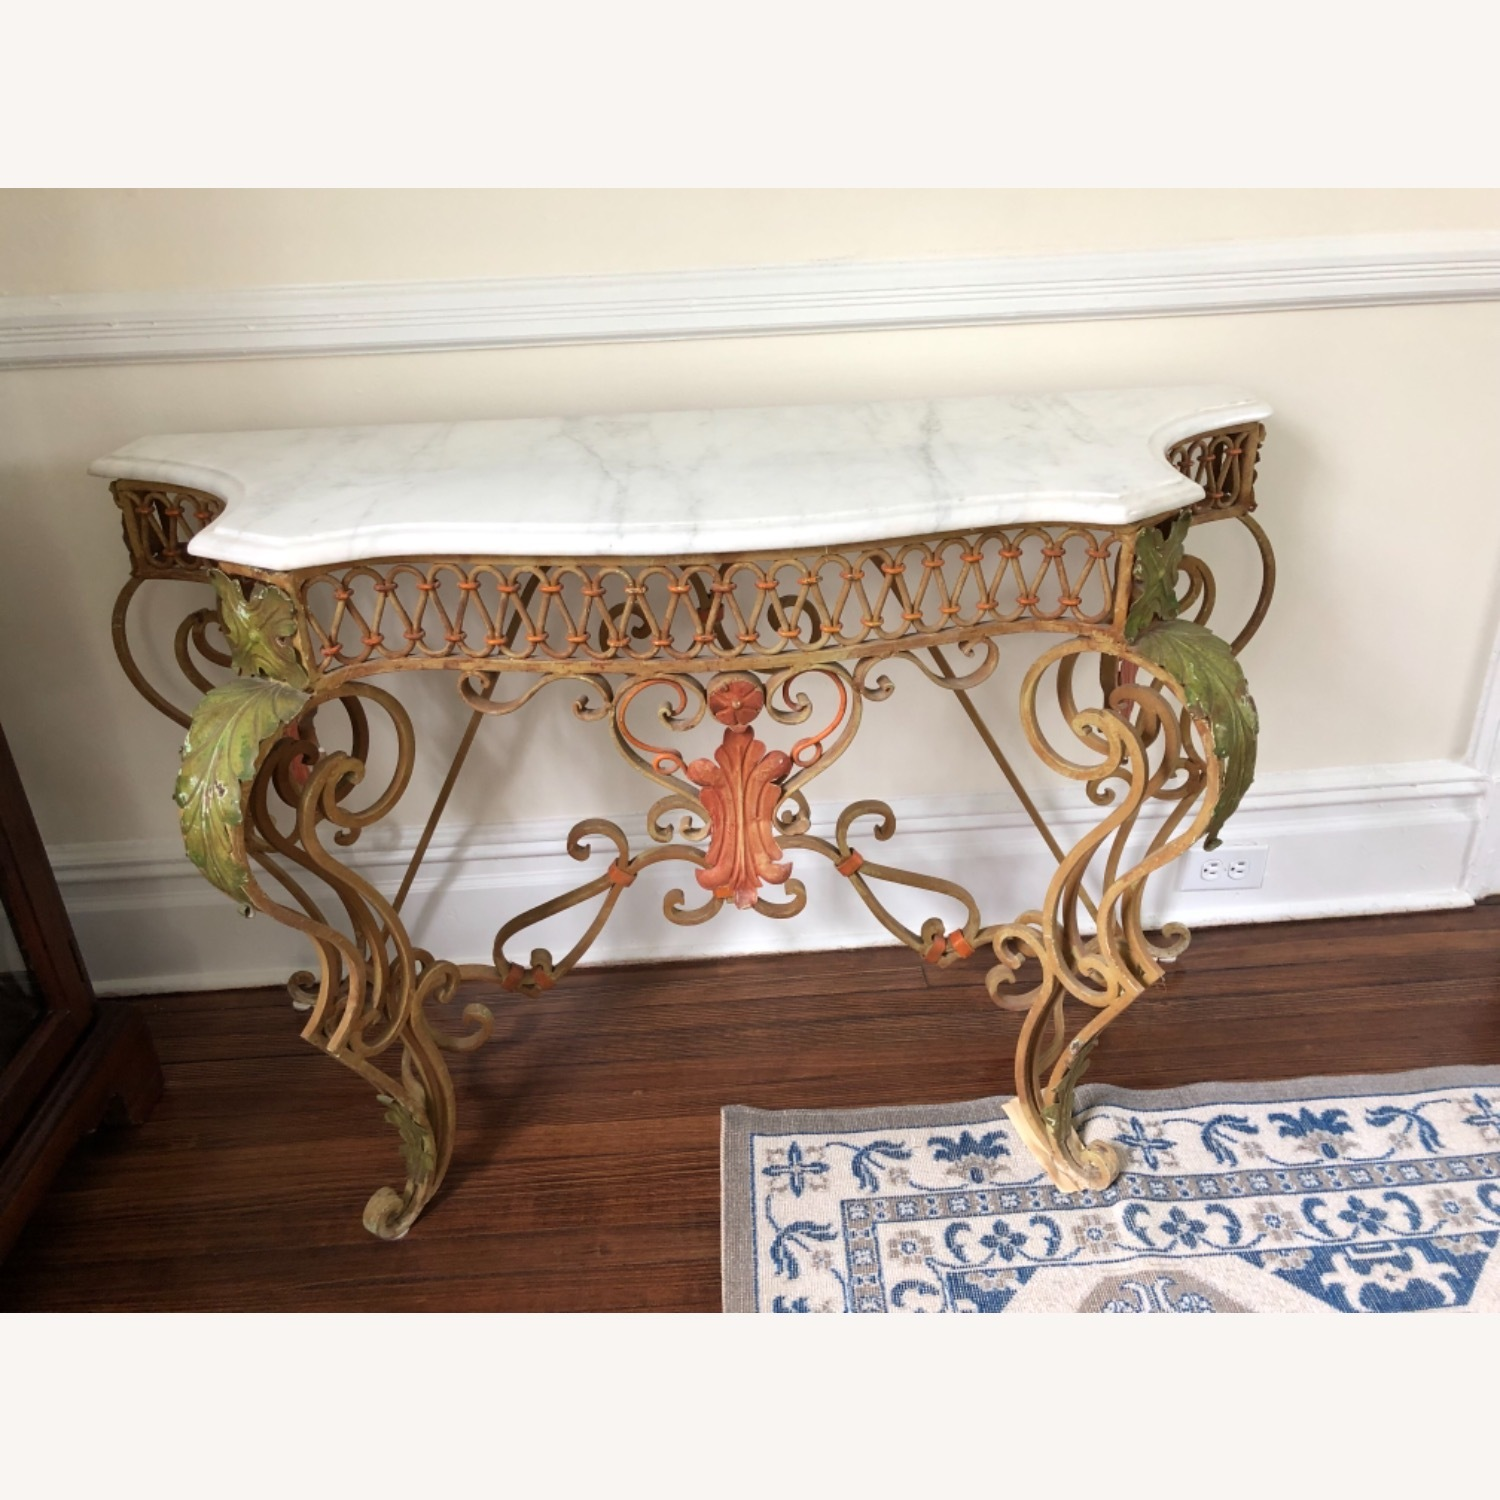 French Antique Iron Table with Marble Top - image-1